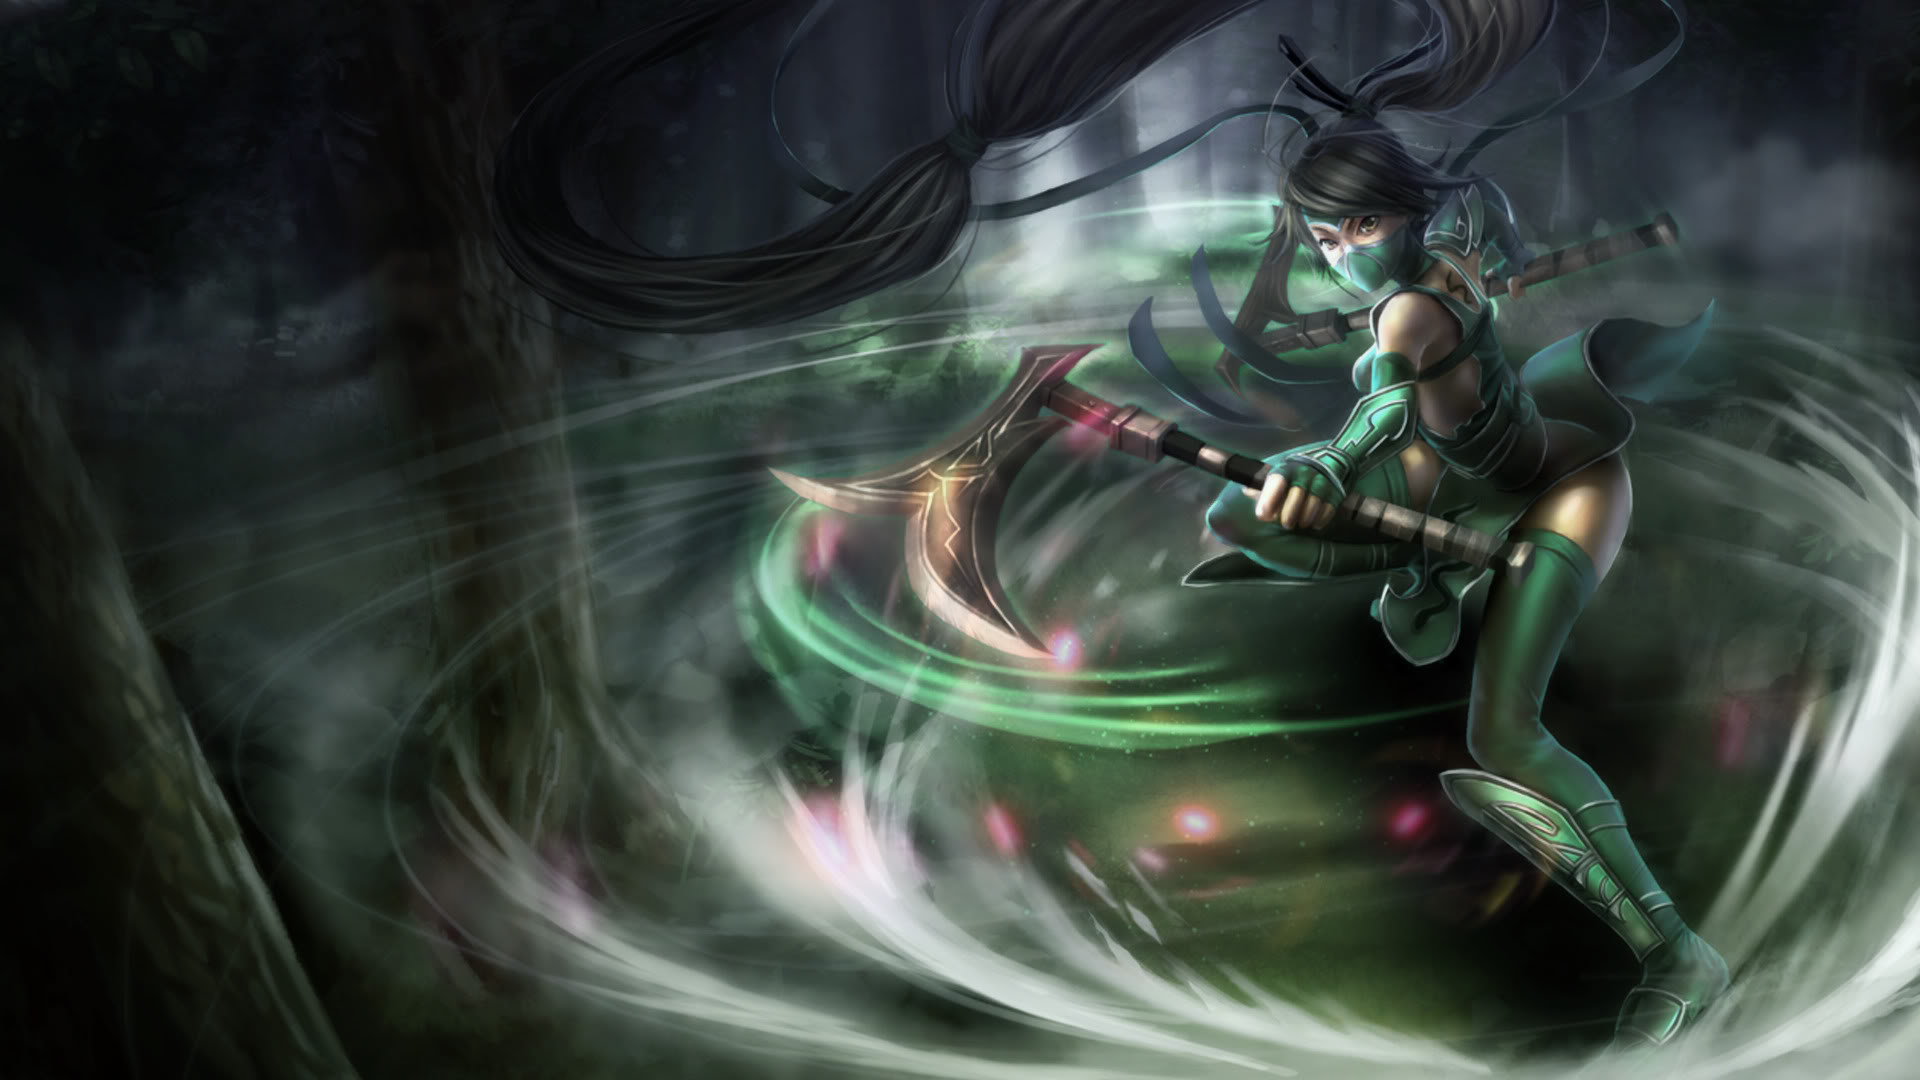 Akali Classic Skin Chinese 2 League Of Legends Wallpapers